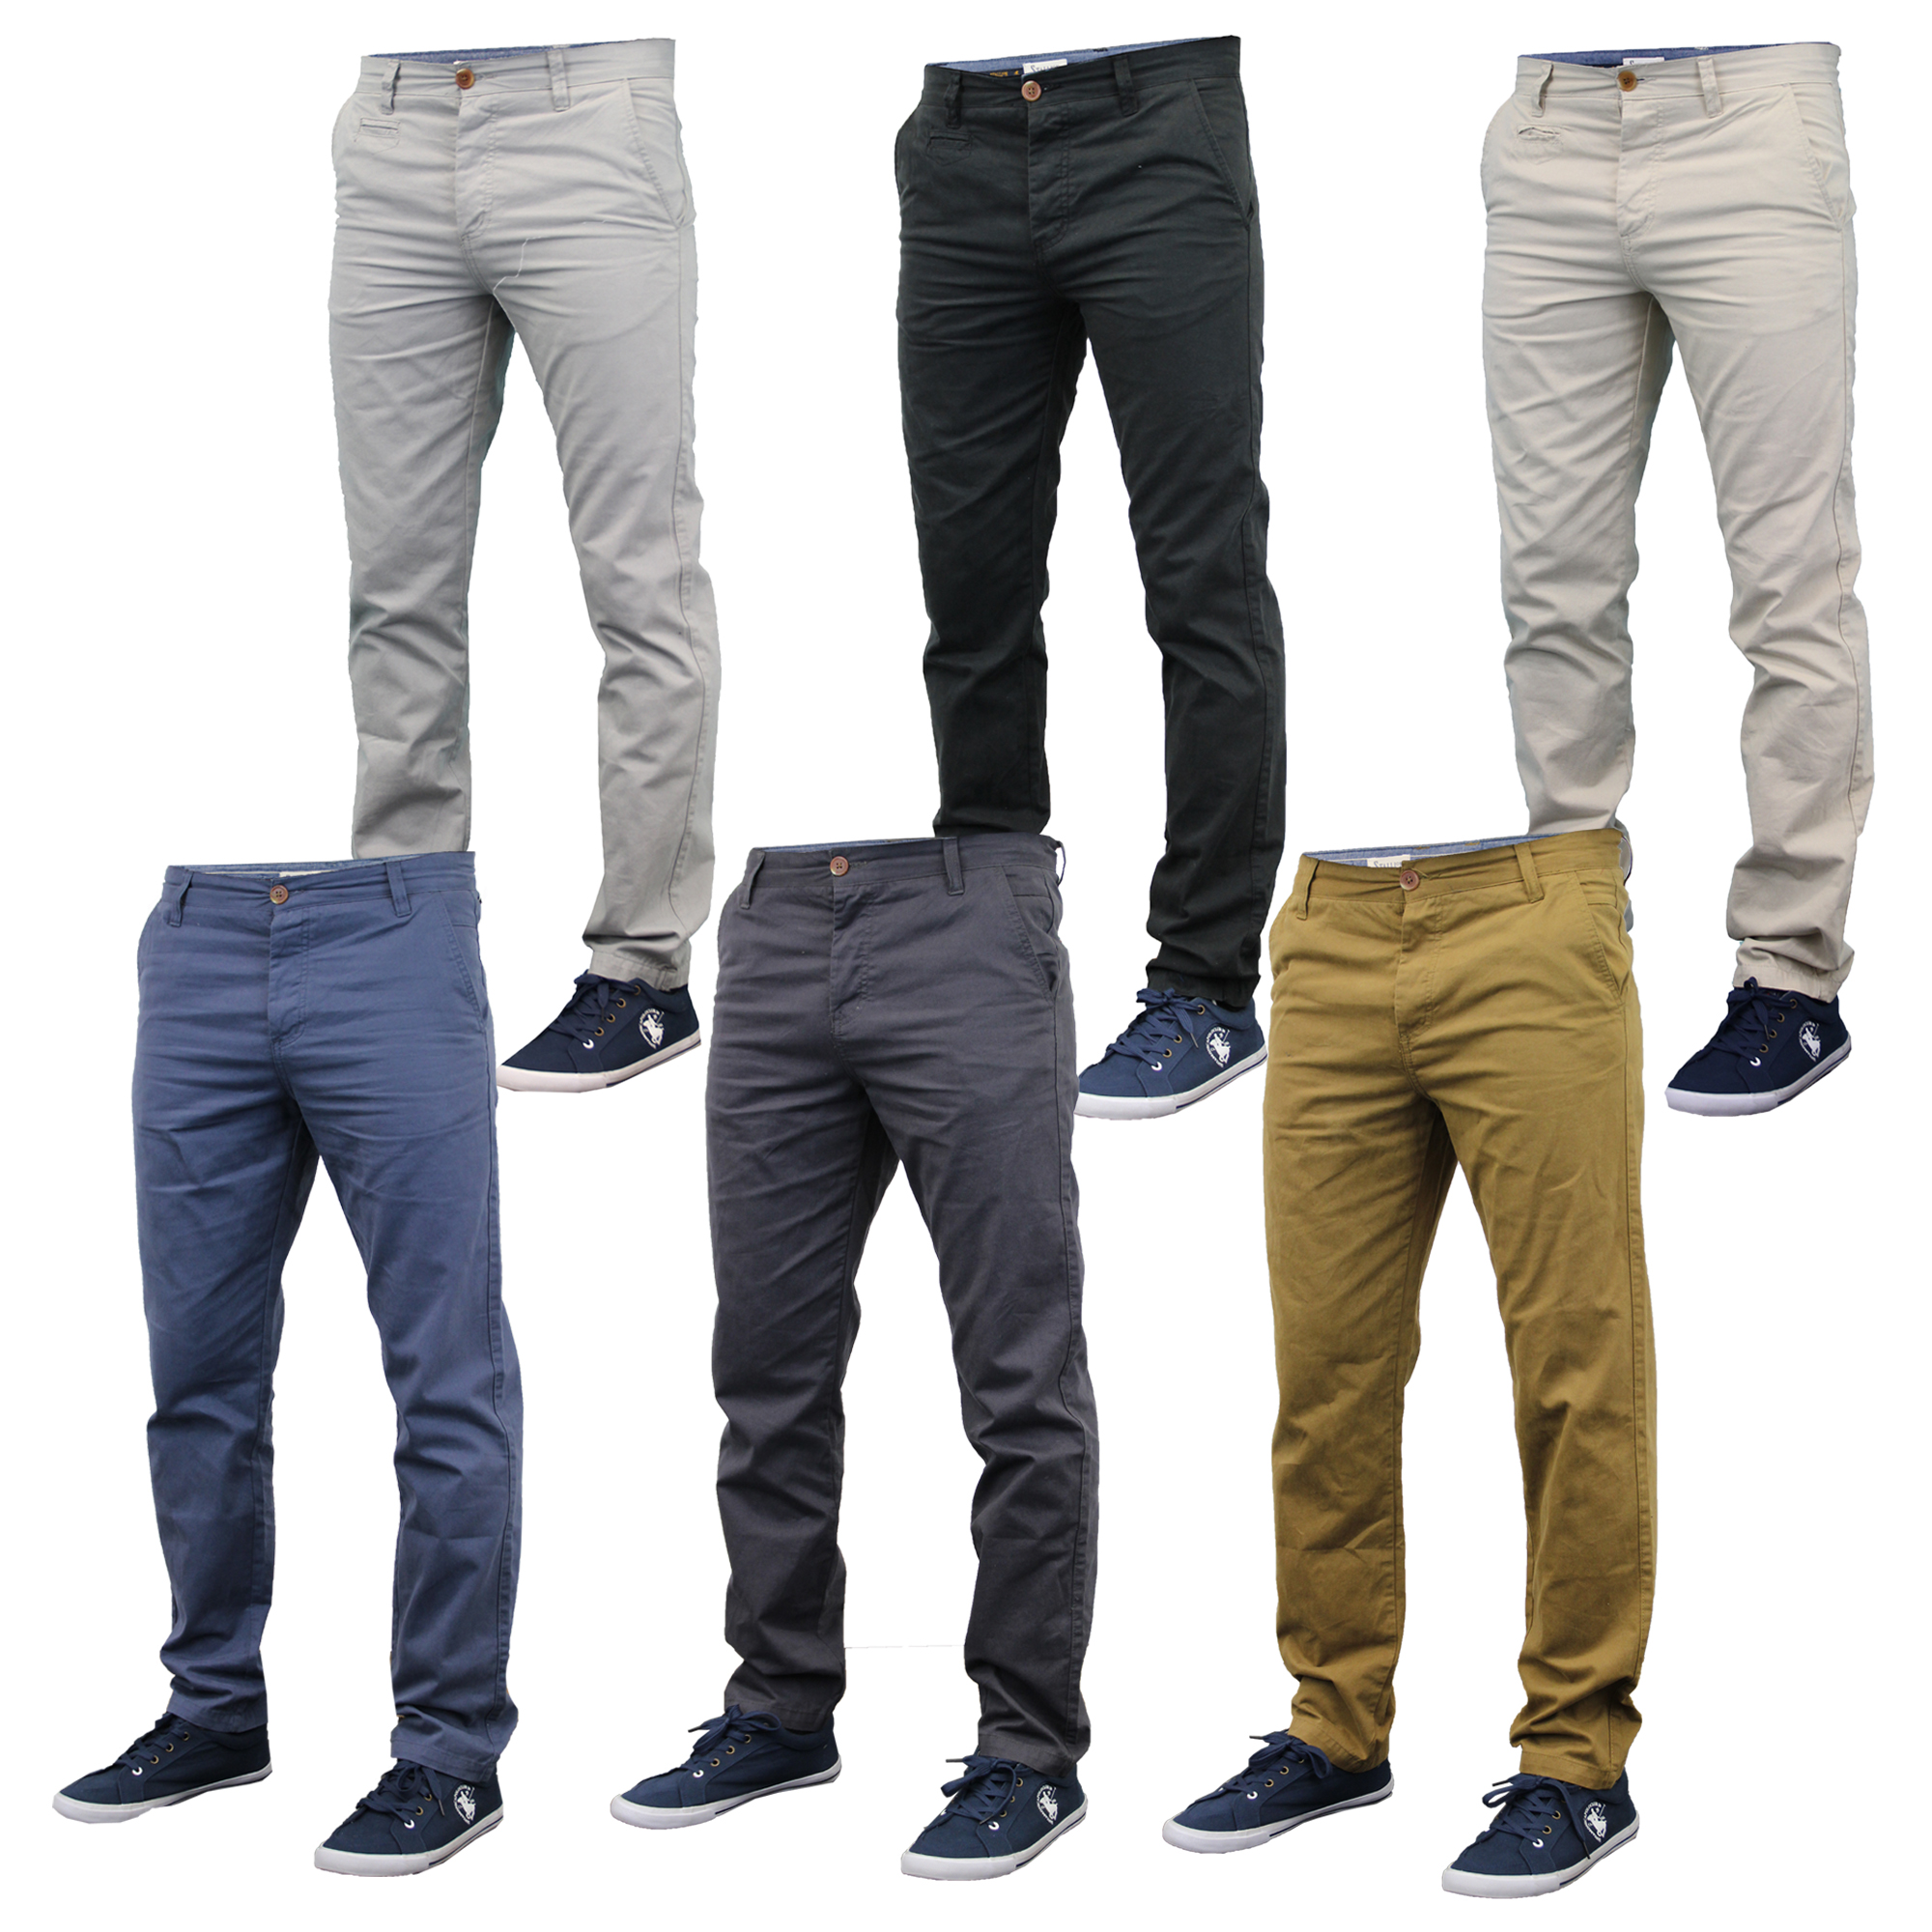 amazon complimentary shipping best place Details about Mens Slim Fit Chinos Jeans By Stallion Comfortable  Lightweight Summer New